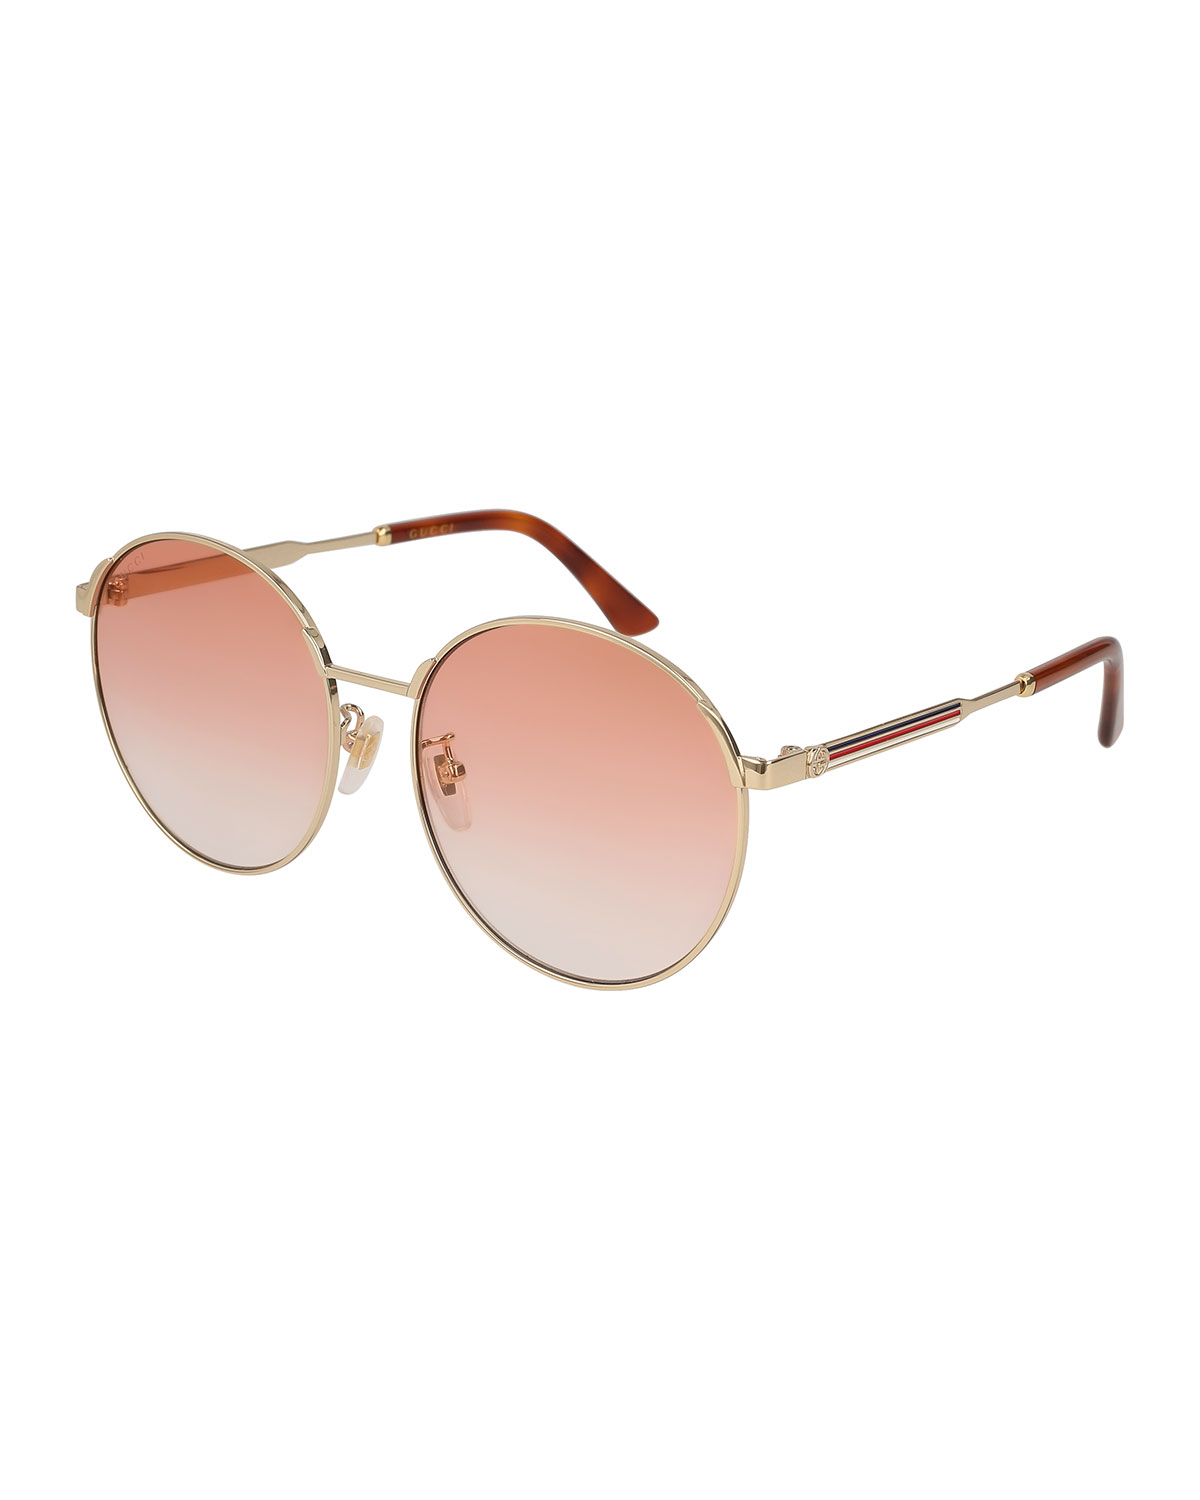 a5ed249522e Gucci Round Metal Web Sunglasses